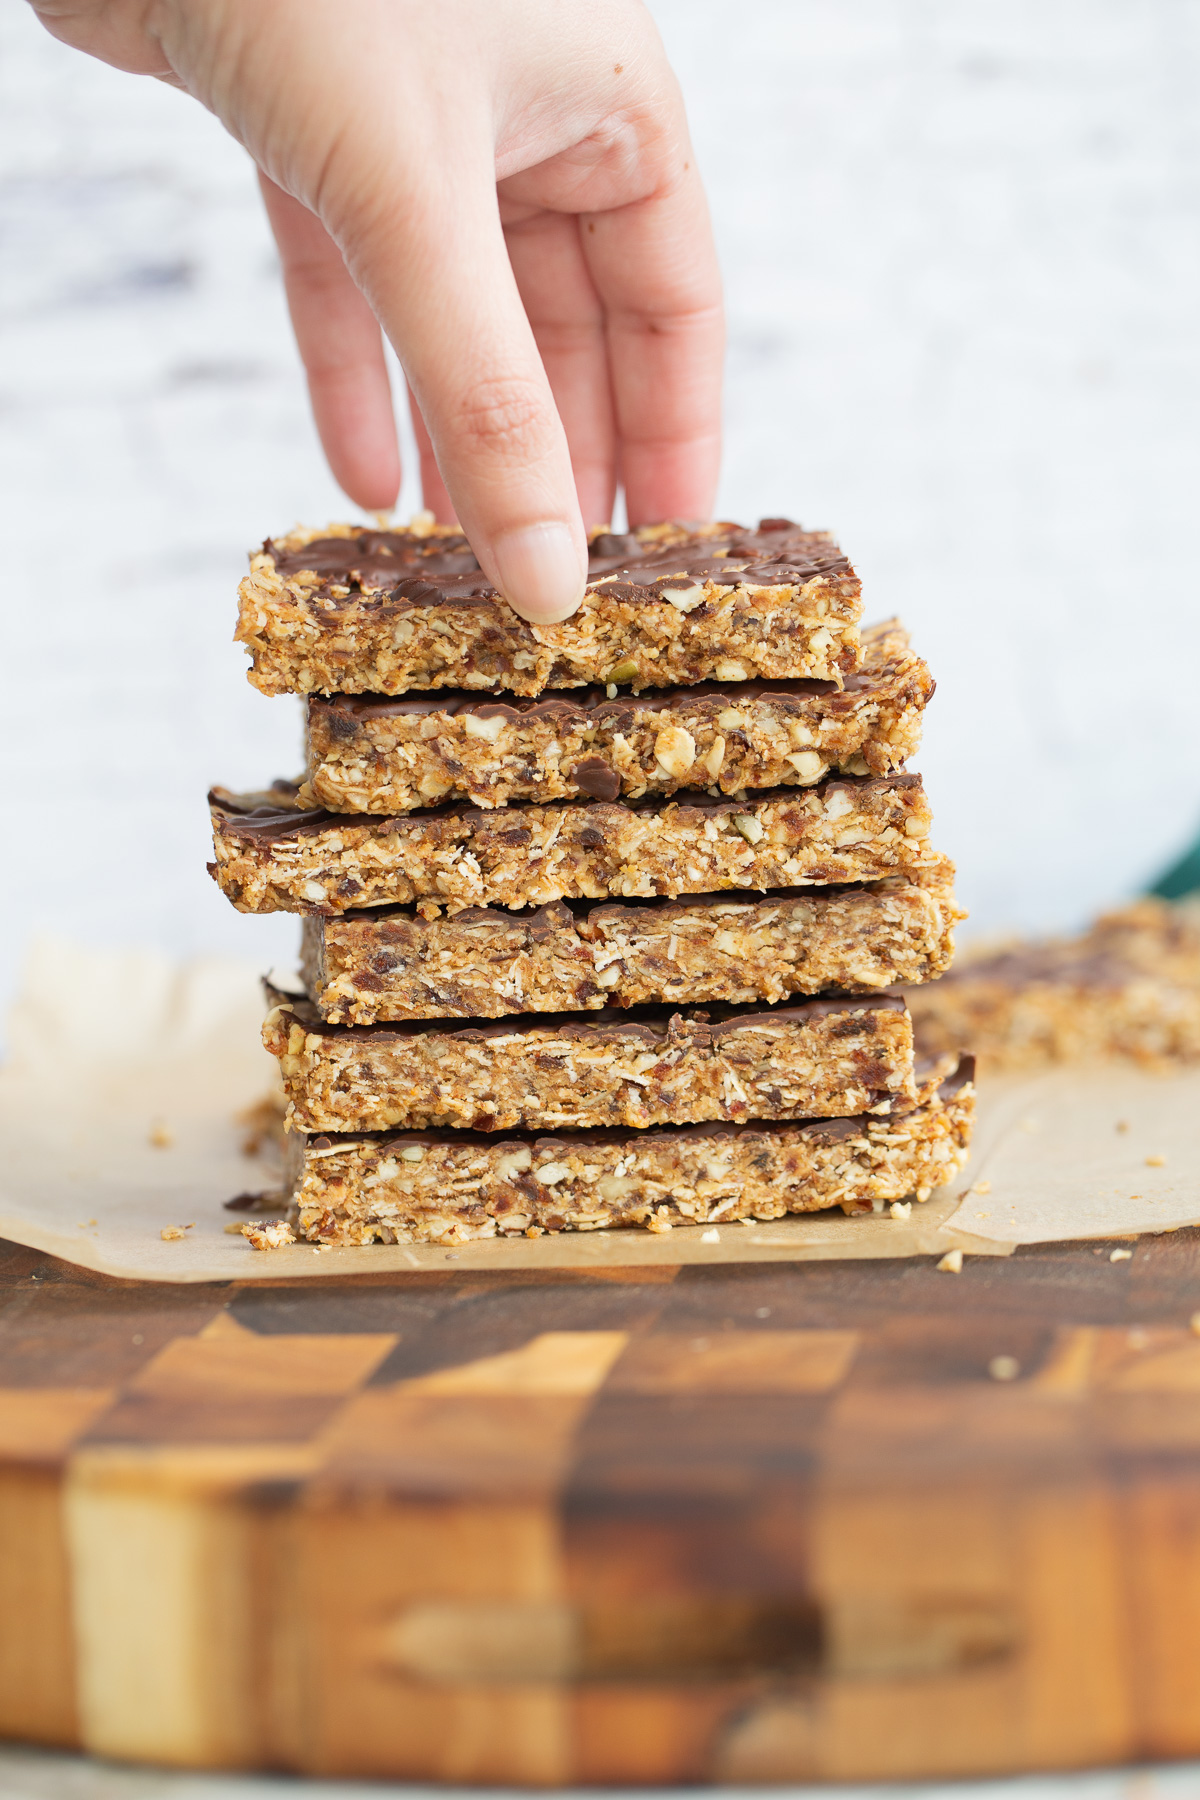 a hand reaching for a vegan date bar on top of a stack of vegan snack bars